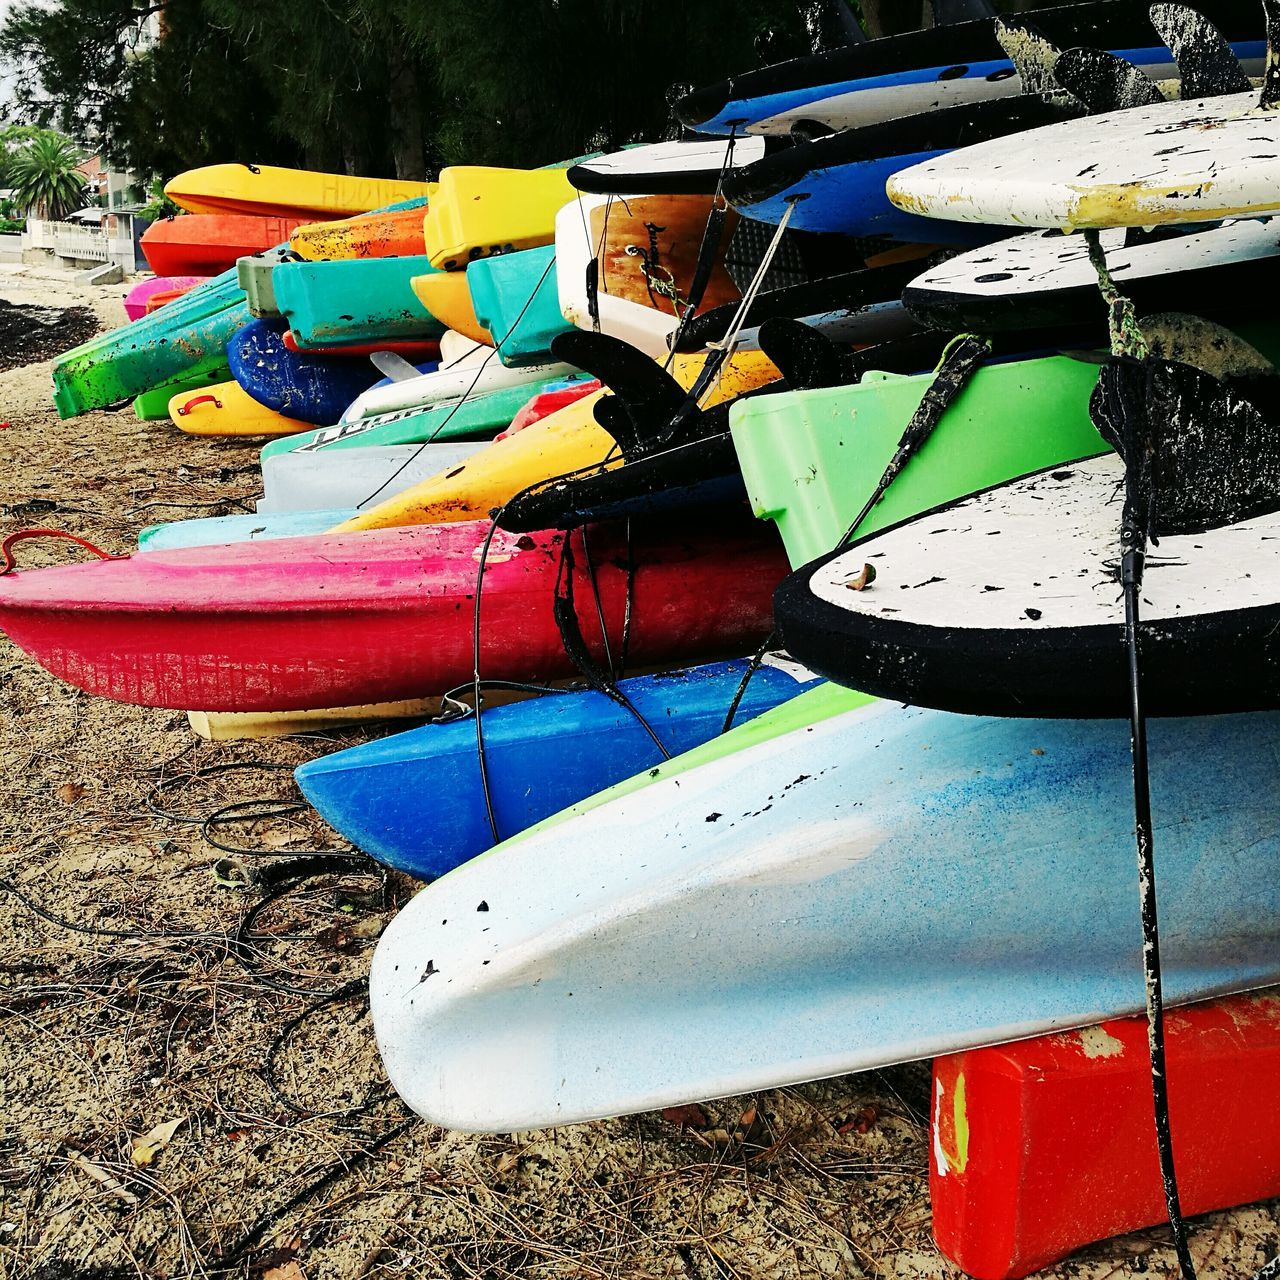 EyeEmNewHere Multi Colored No People Day Close-up Water Outdoors Huaweiphotography HuaweiP9 Mobilephotography Canoes Surfboard